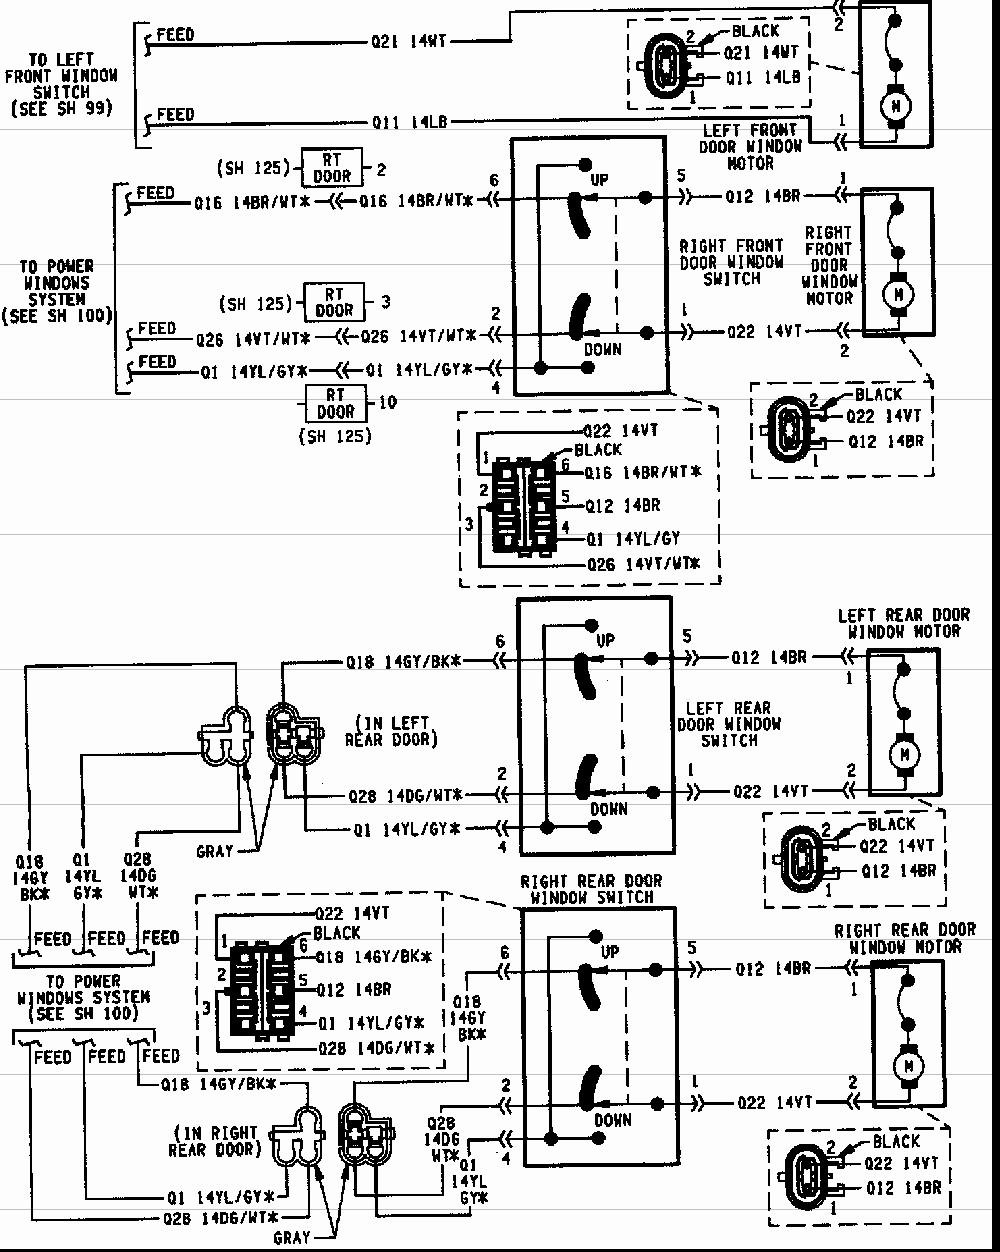 Unique 2001 Honda Civic Radio Wiring Diagram | Wiring Diagram Image